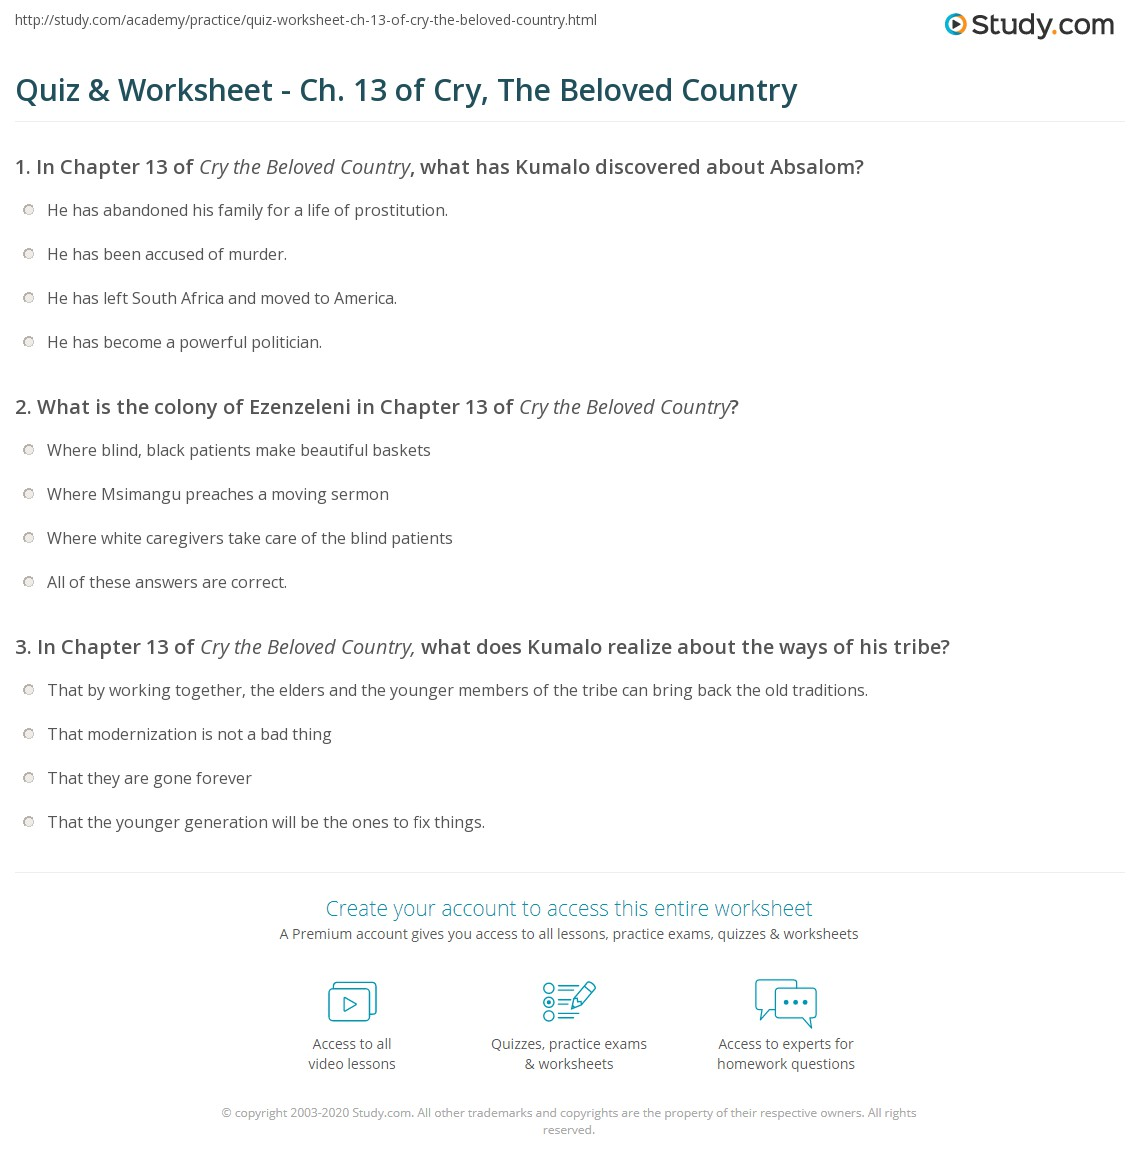 Quiz & Worksheet - Ch. 13 of Cry, The Beloved Country | Study.com